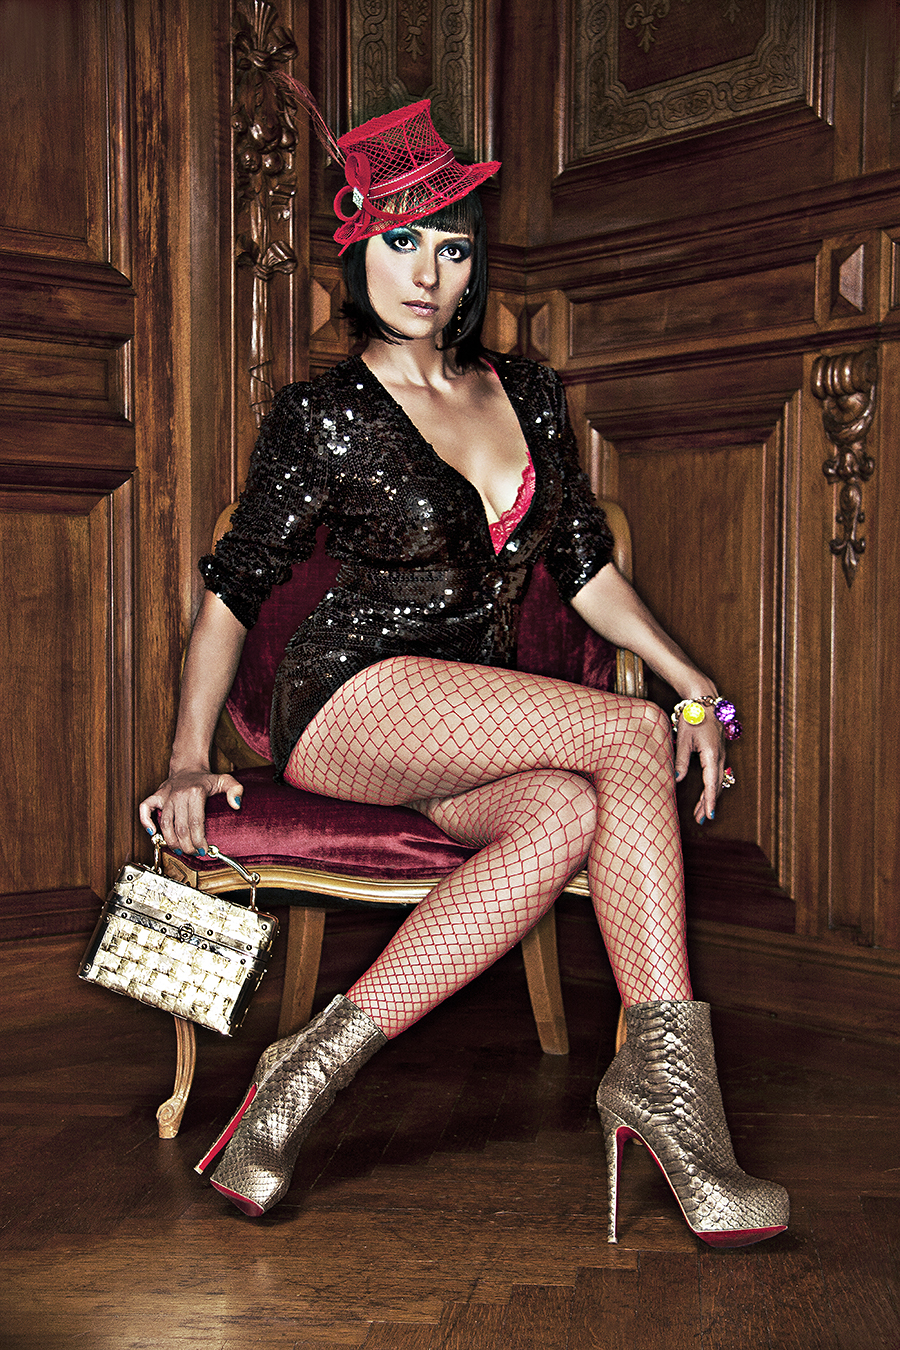 Tony_Ward_fashion_photography_German_Cosmopolitan_model_Carmelita_martell_fishnets_red_hat_Louboutin_heels